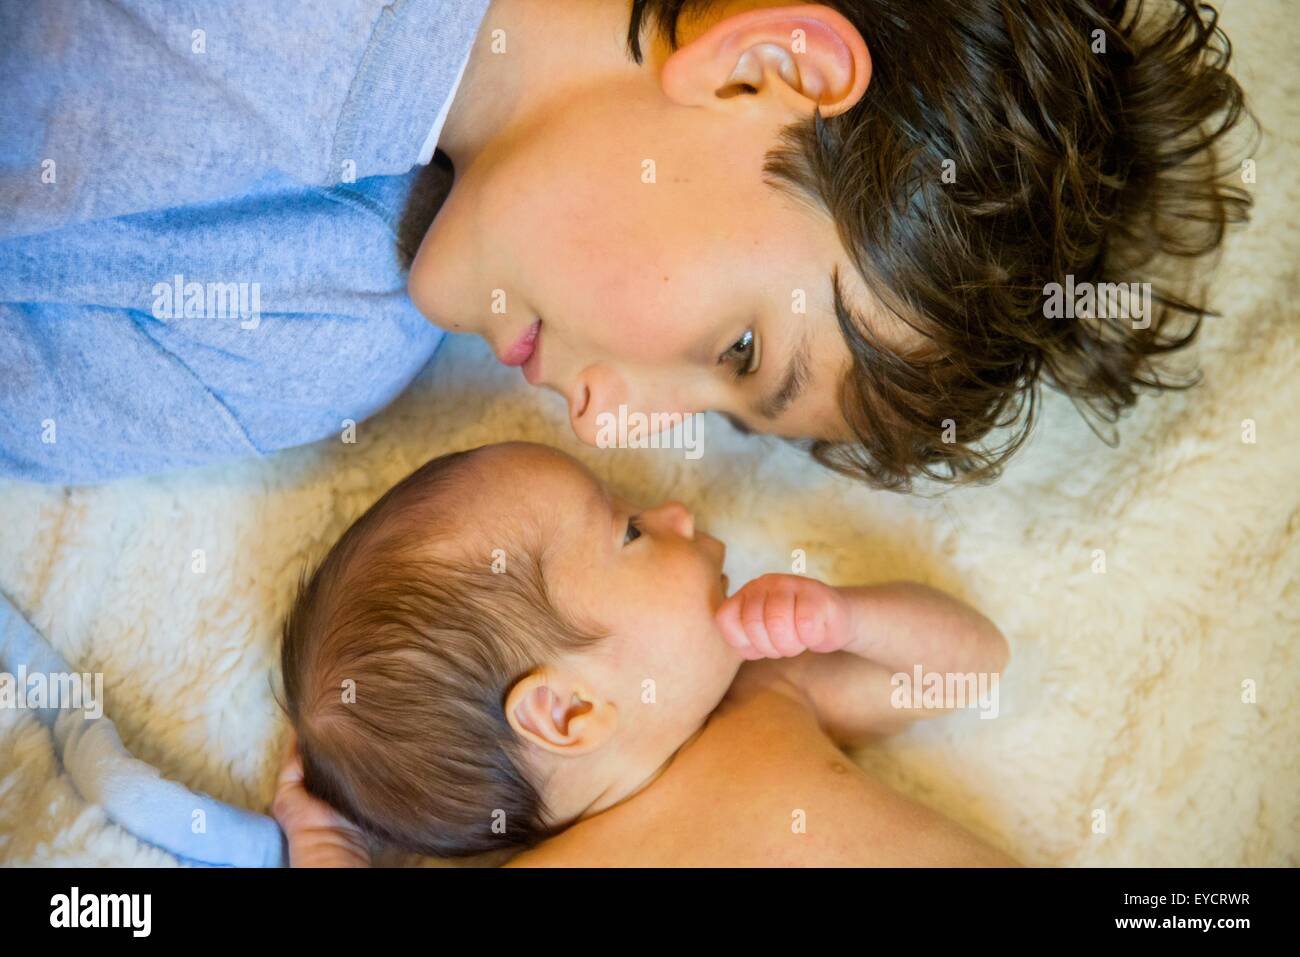 Big brother with baby brother - Stock Image